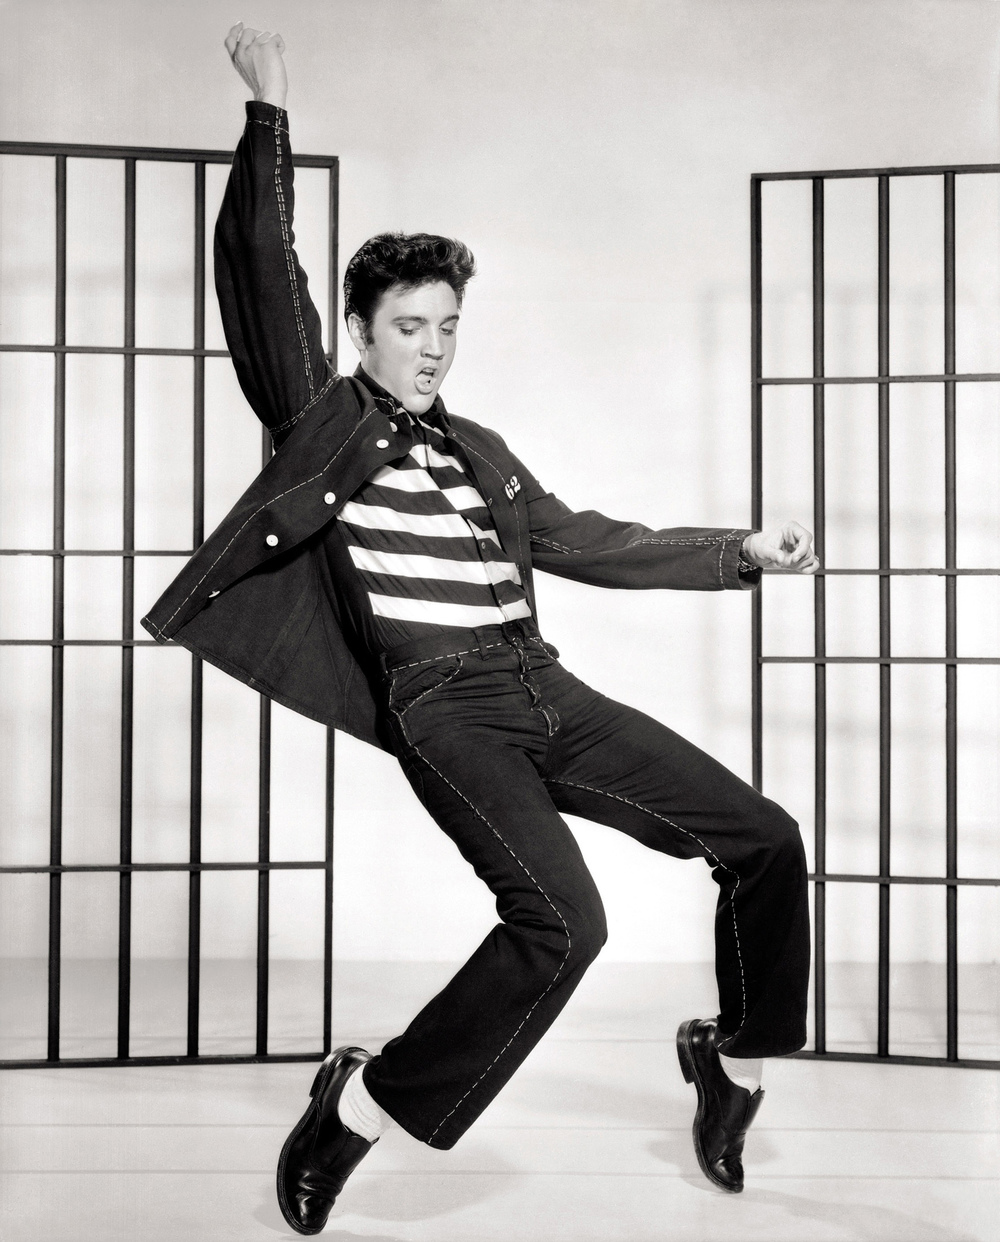 16. Which Elvis Presley single was the first ever to break in to the UK charts at number one? Jailhouse Rock